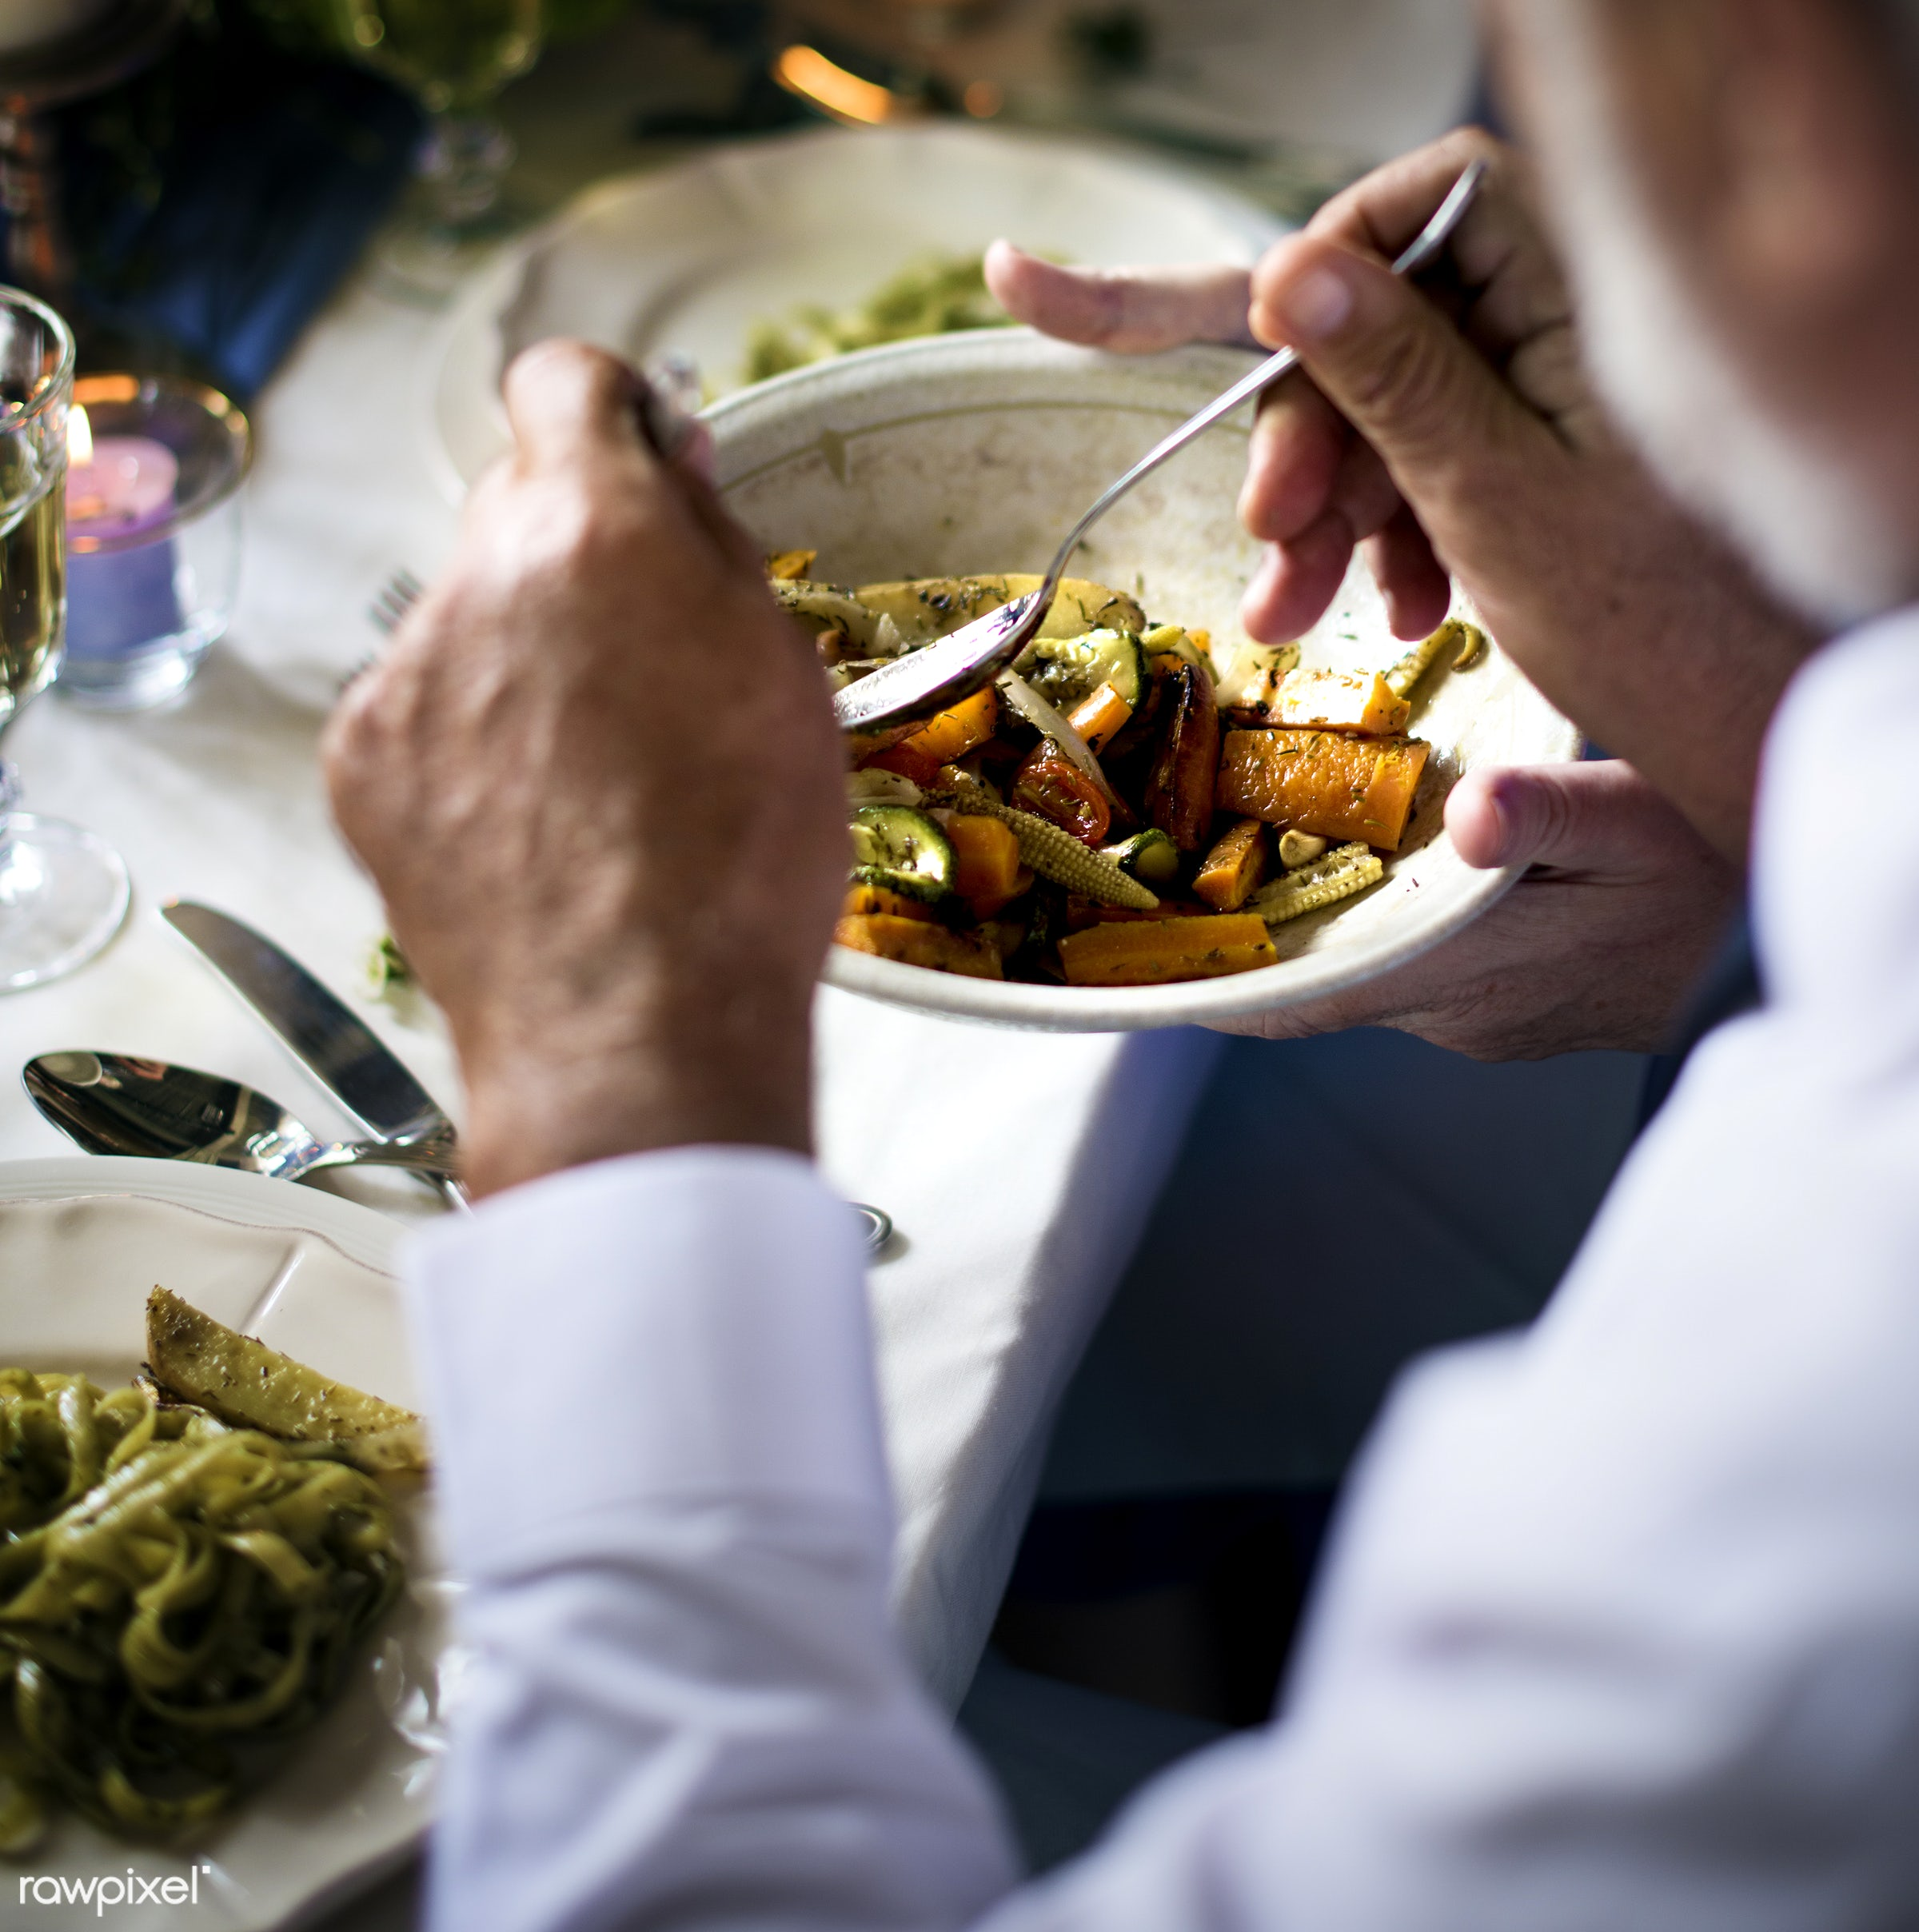 getting, person, cuisine, occasion, cutlery, party, hands, banquet, lunch, veggie, closeup, man, meal, bowl, dinner, food,...